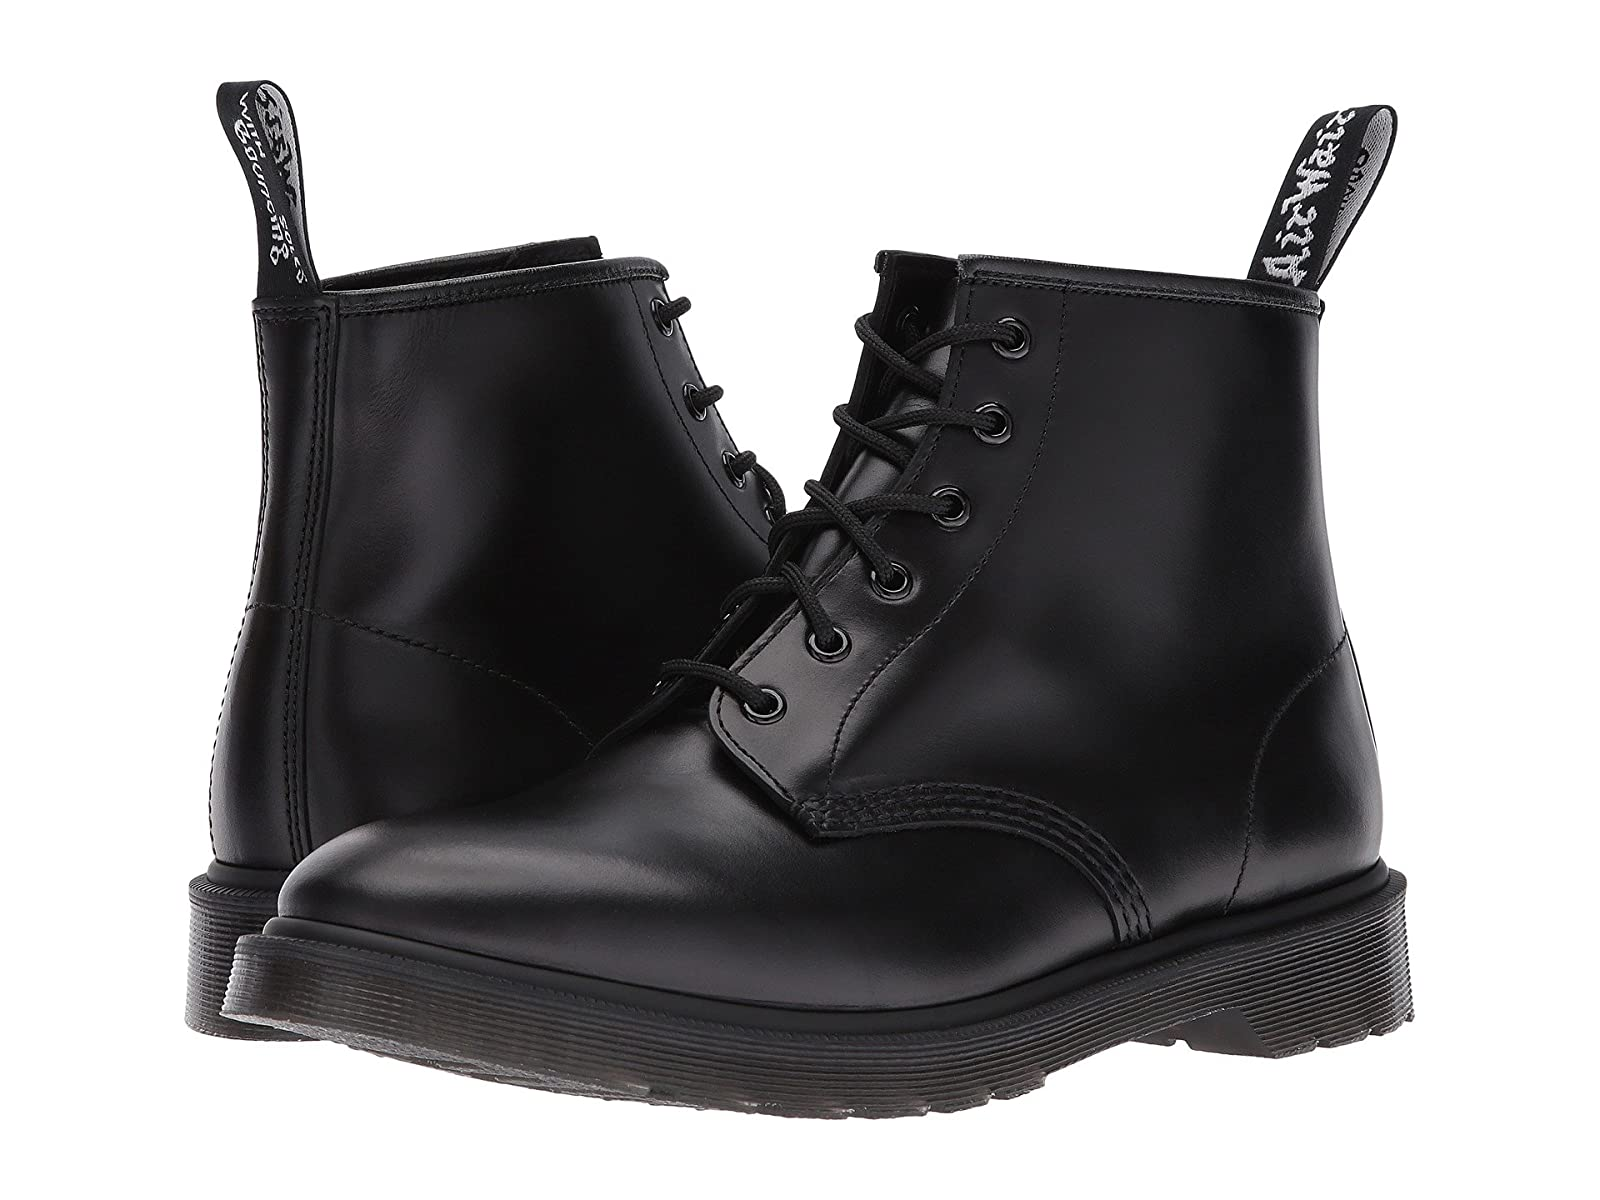 Dr. Martens 101 Brando 6-Eyelet BootCheap and distinctive eye-catching shoes